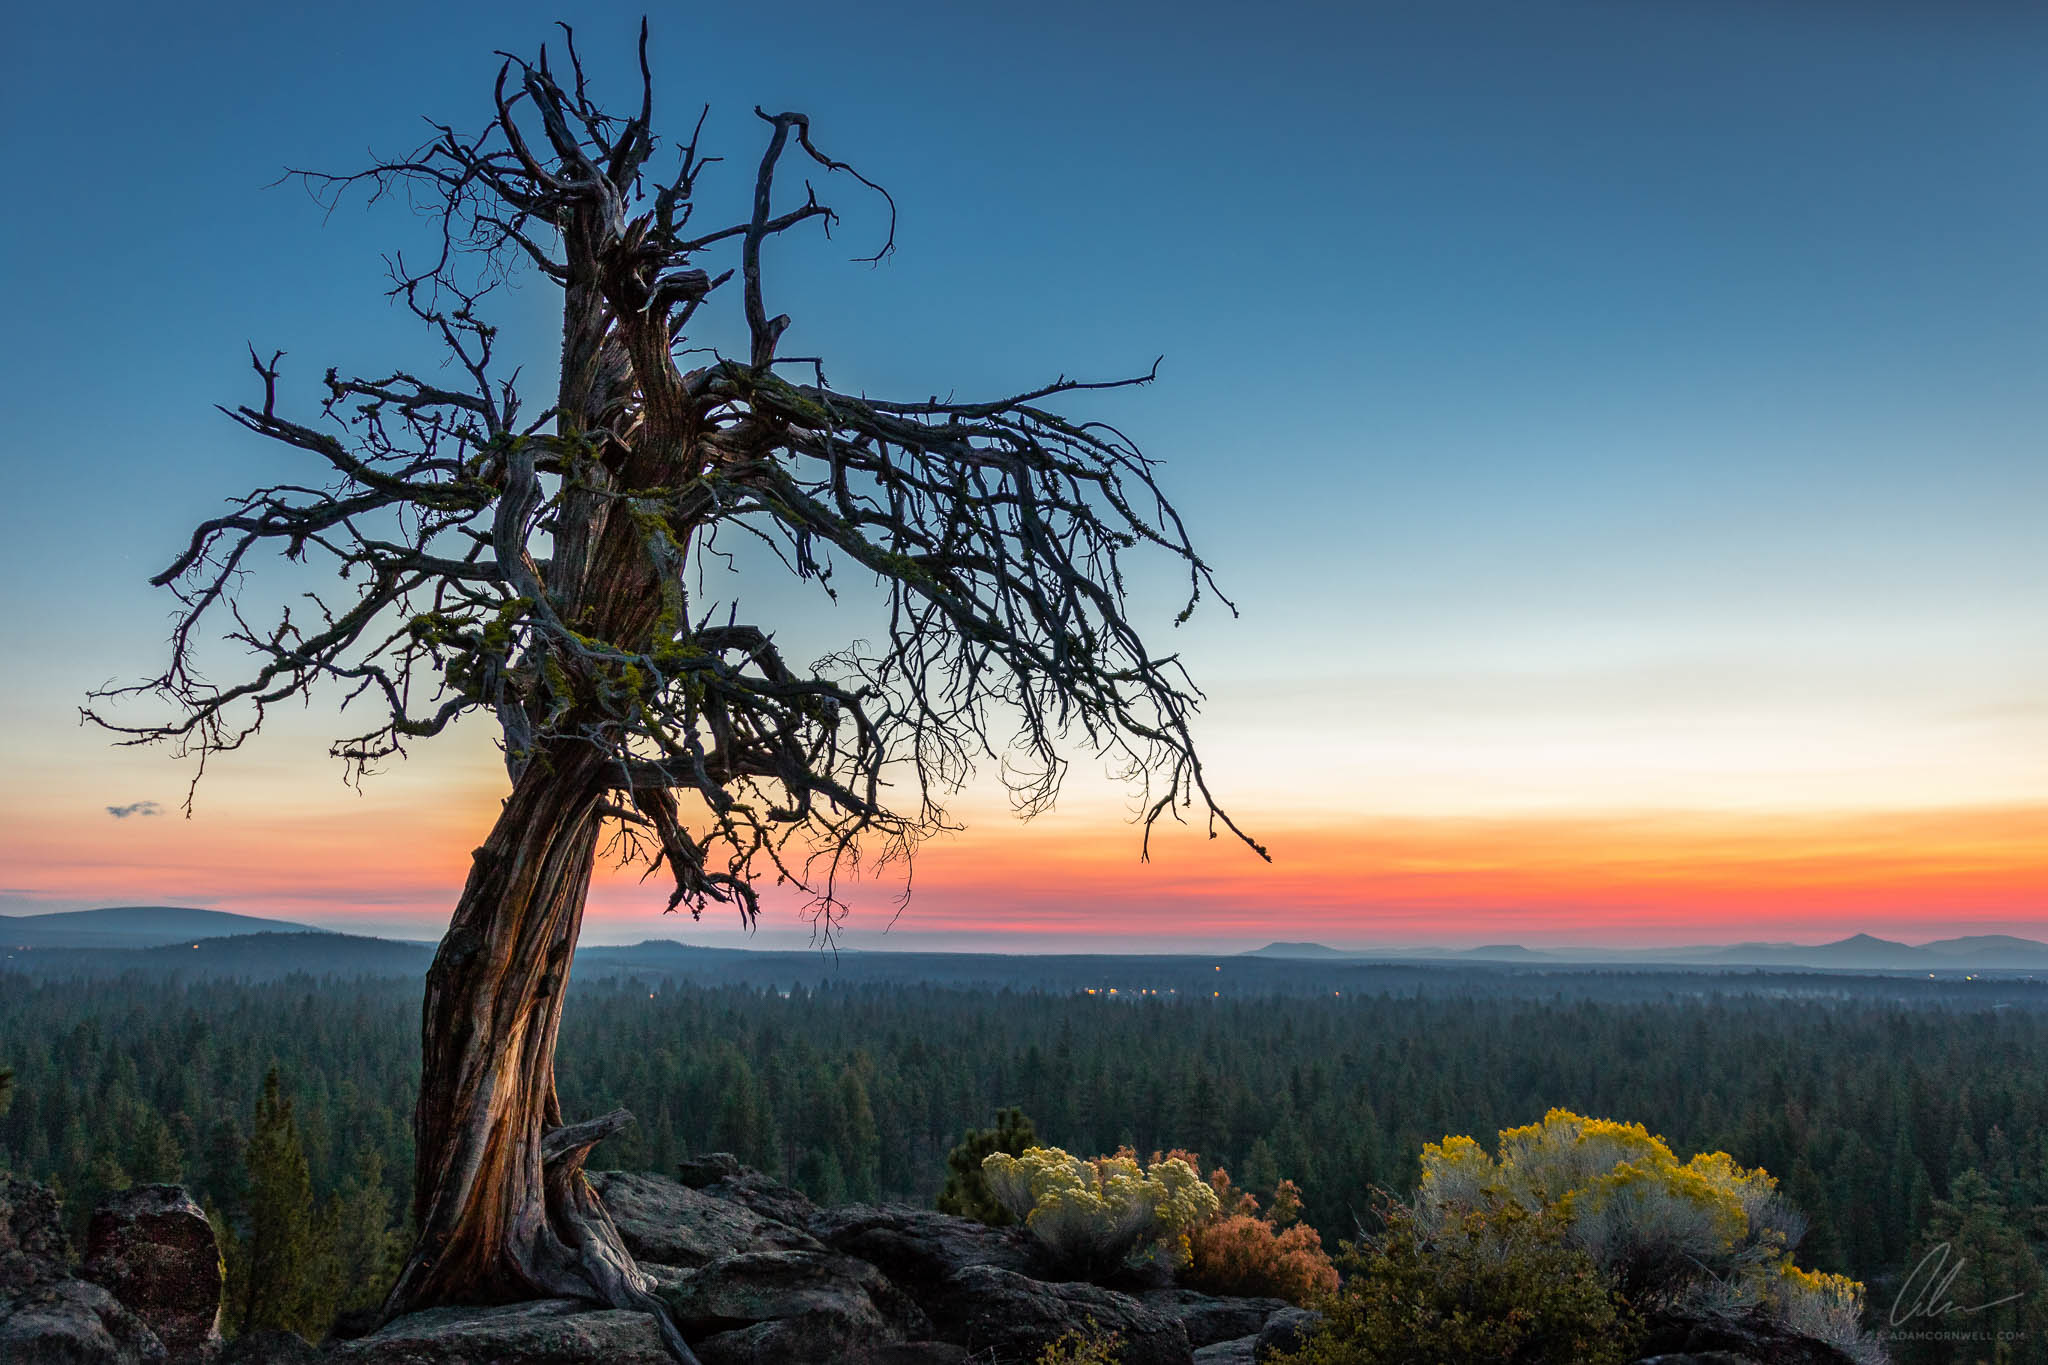 Gnarled Tree at Sunrise